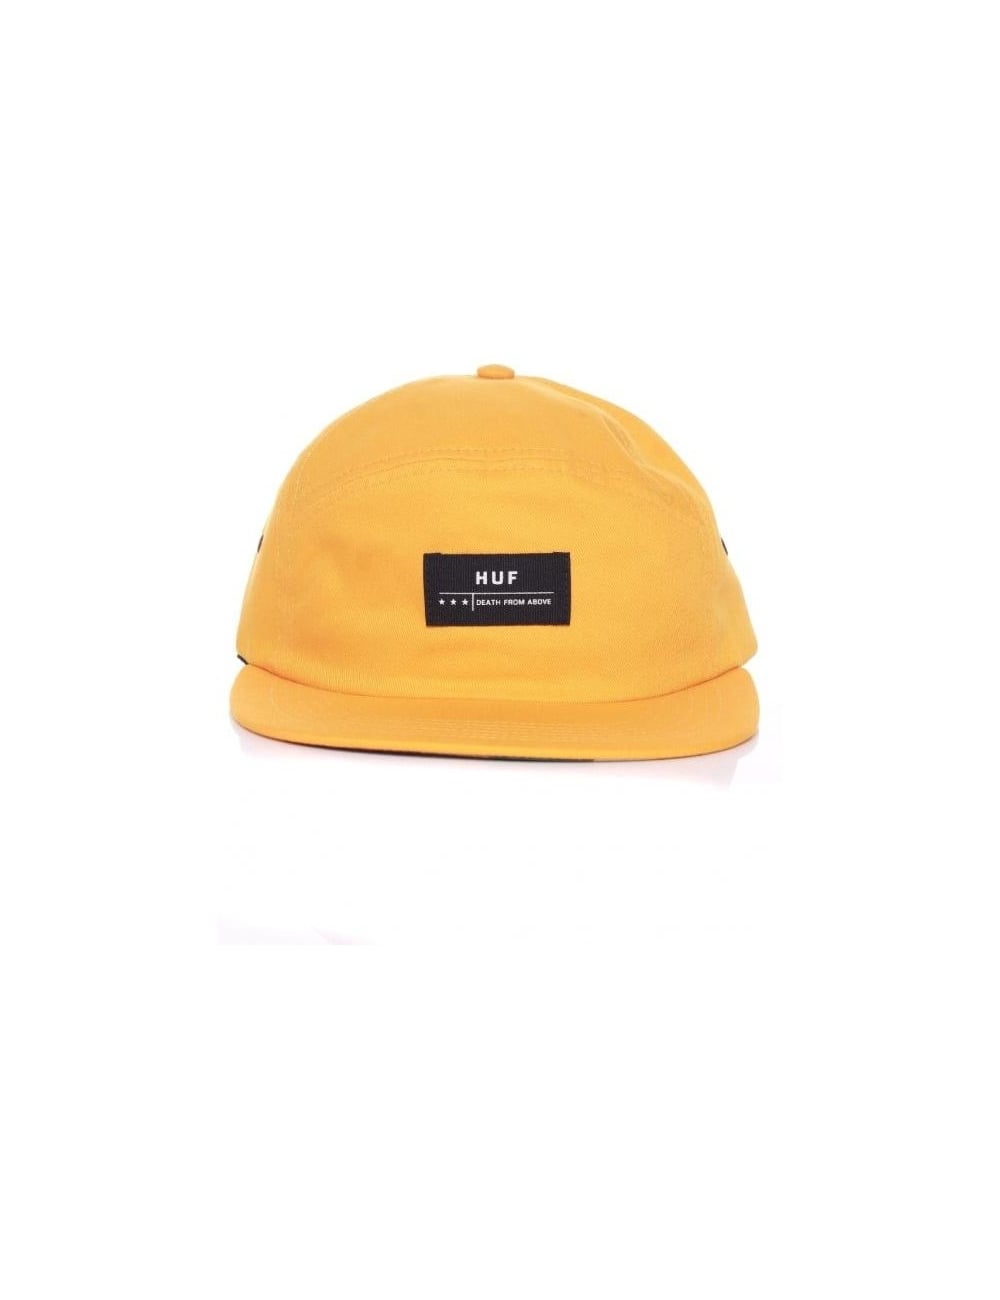 7c9fc53f62f Huf Death From Above 6 Panel Volley Hat - Gold - Hat Shop from Fat ...